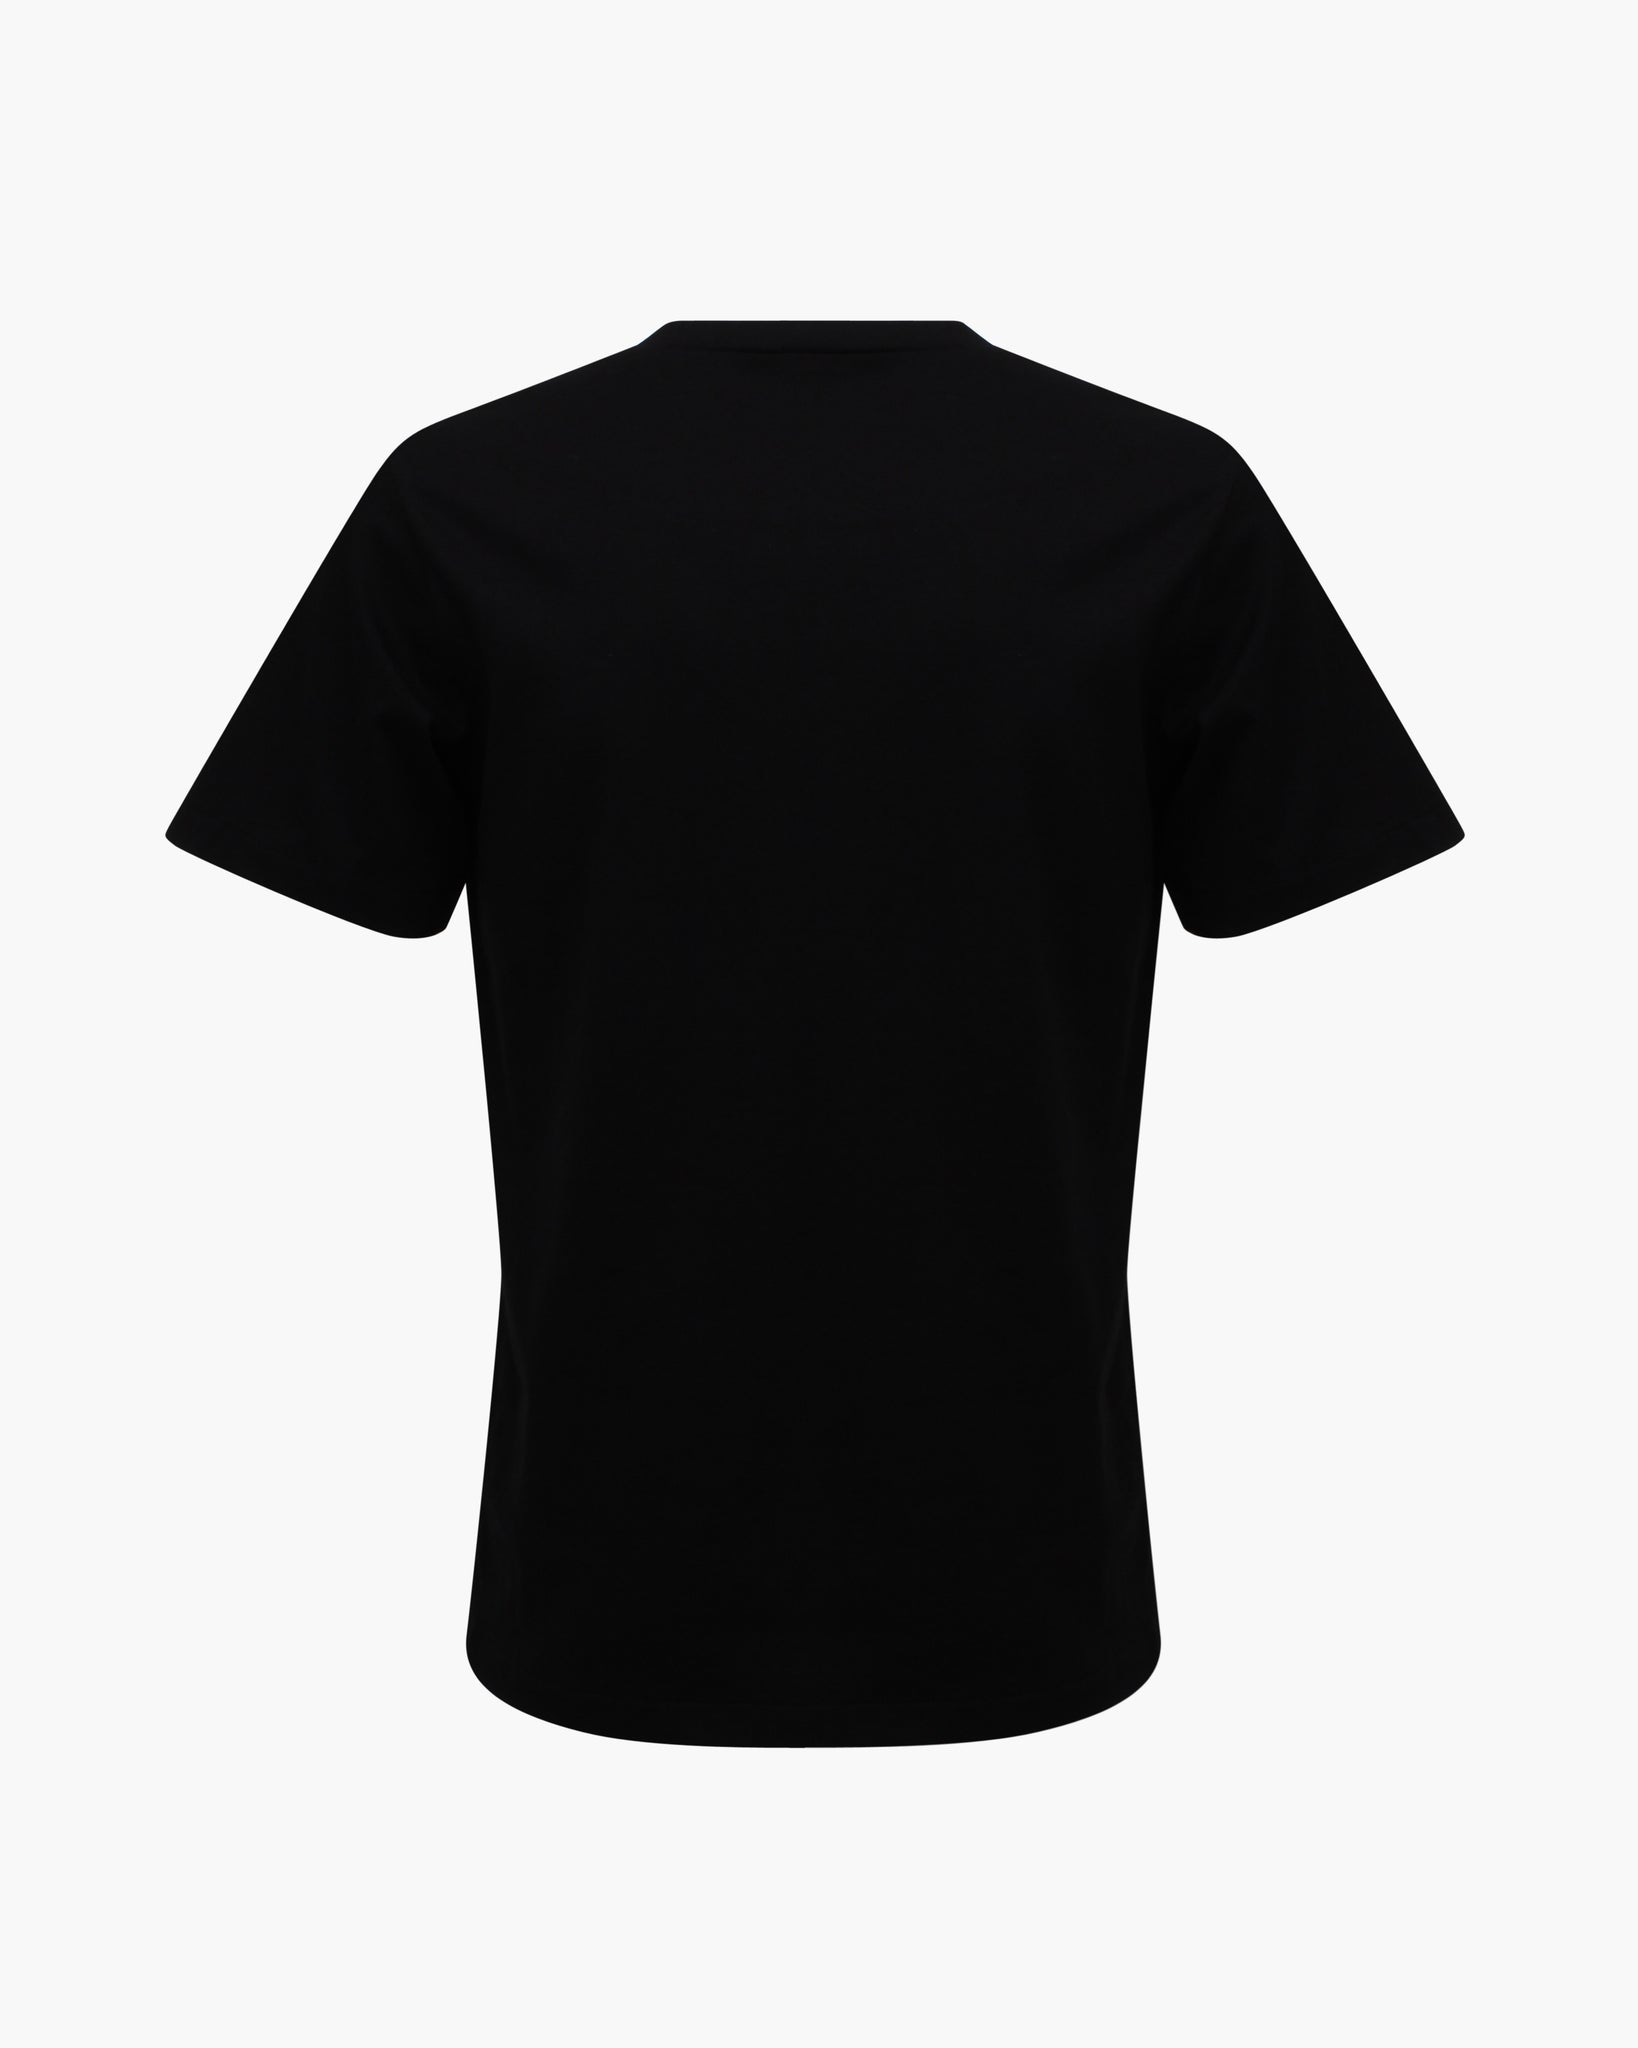 Rhys T-shirt Cotton Jersey Black Embroidery